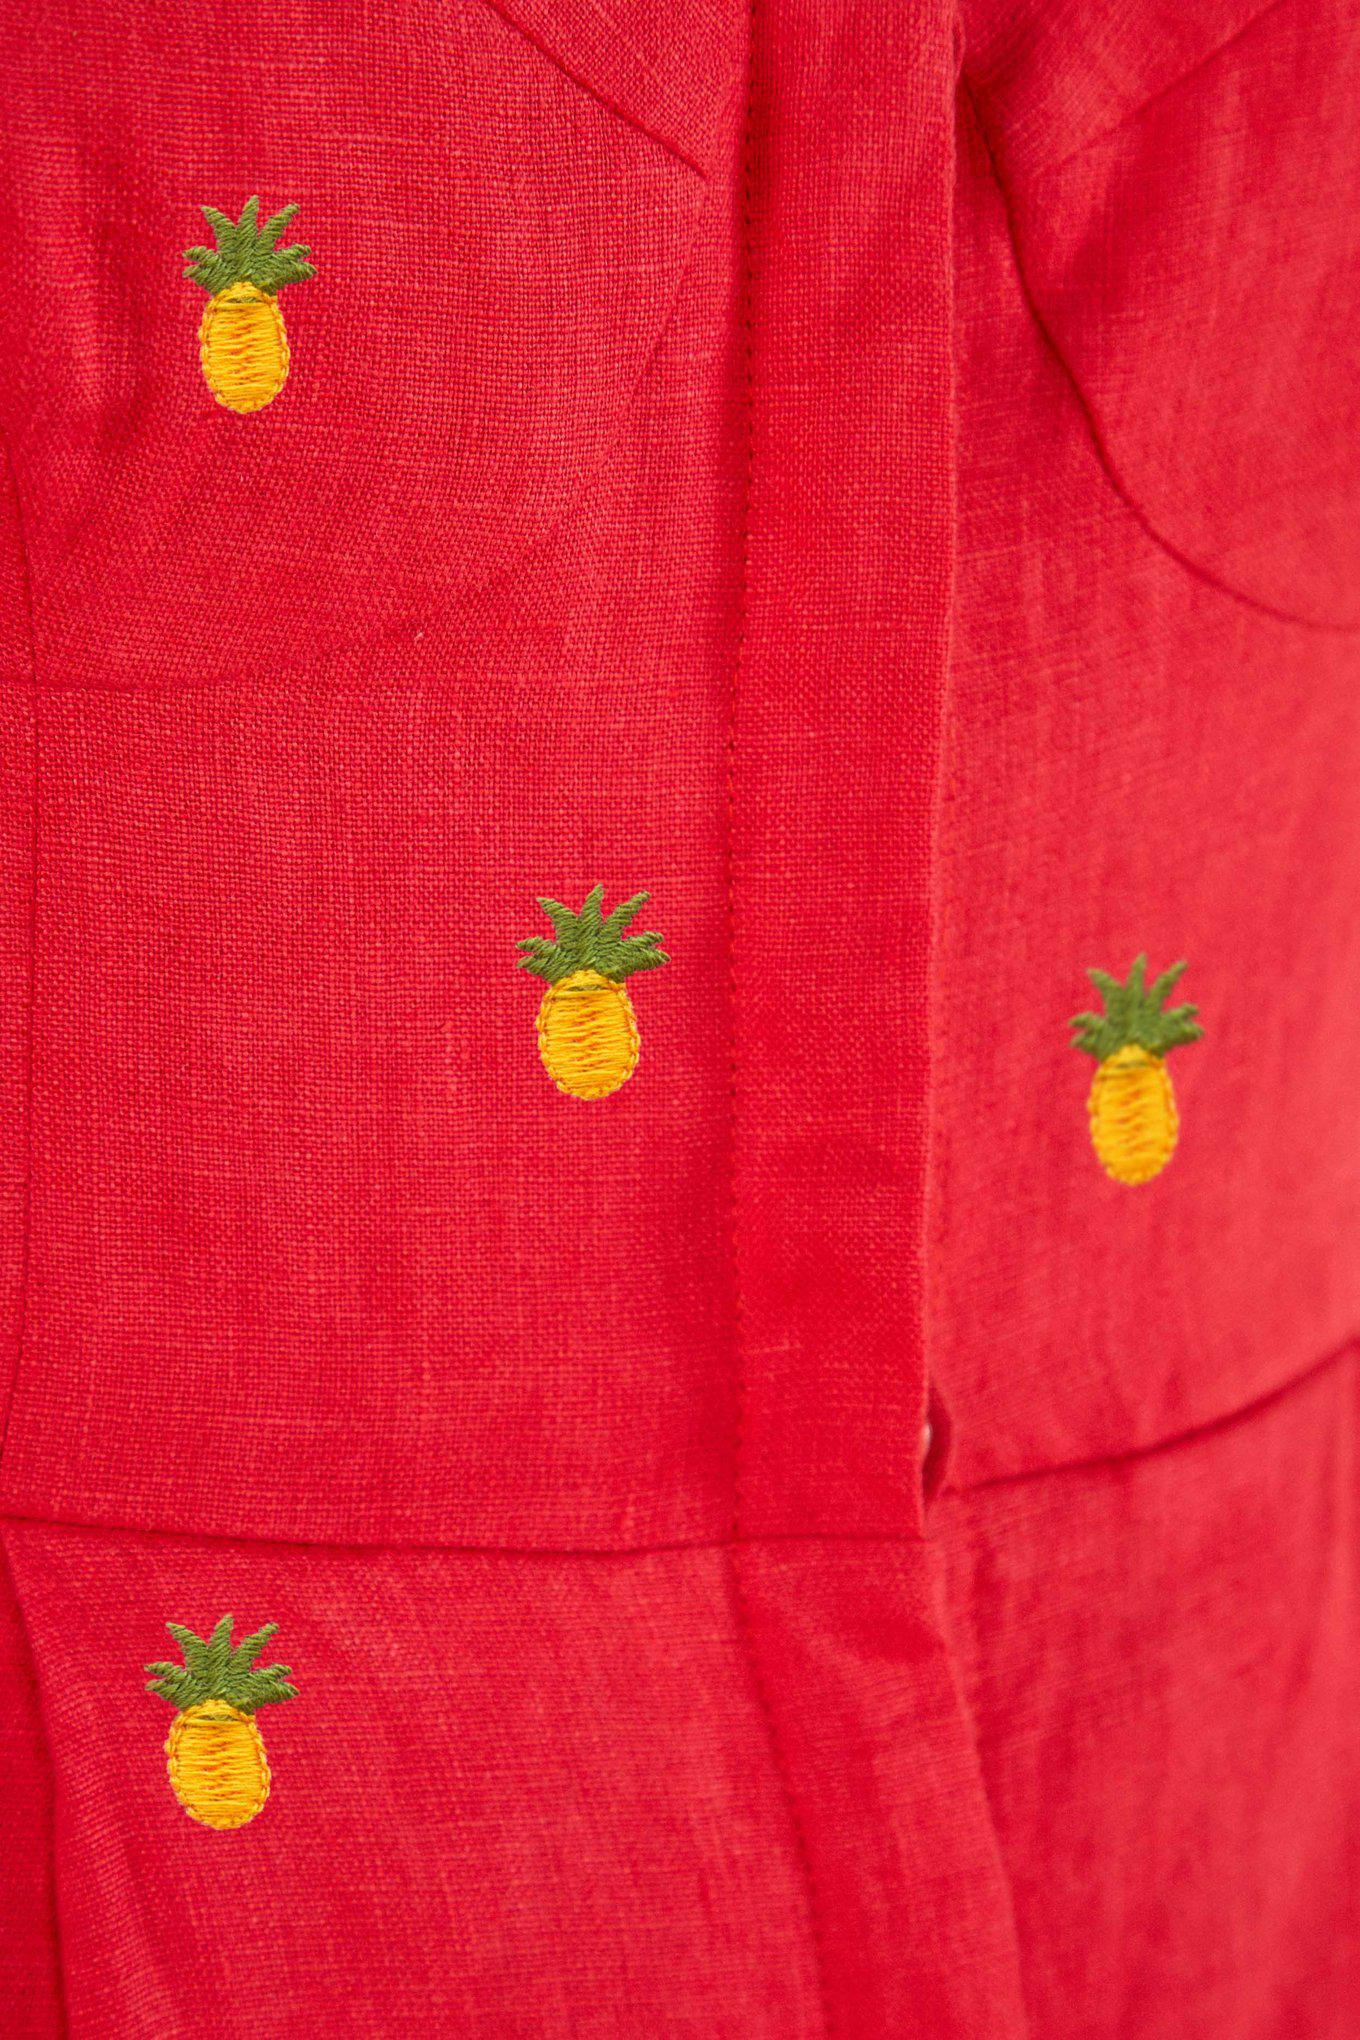 EMBROIDERED PINEAPPLES RED JUMPSUIT 5